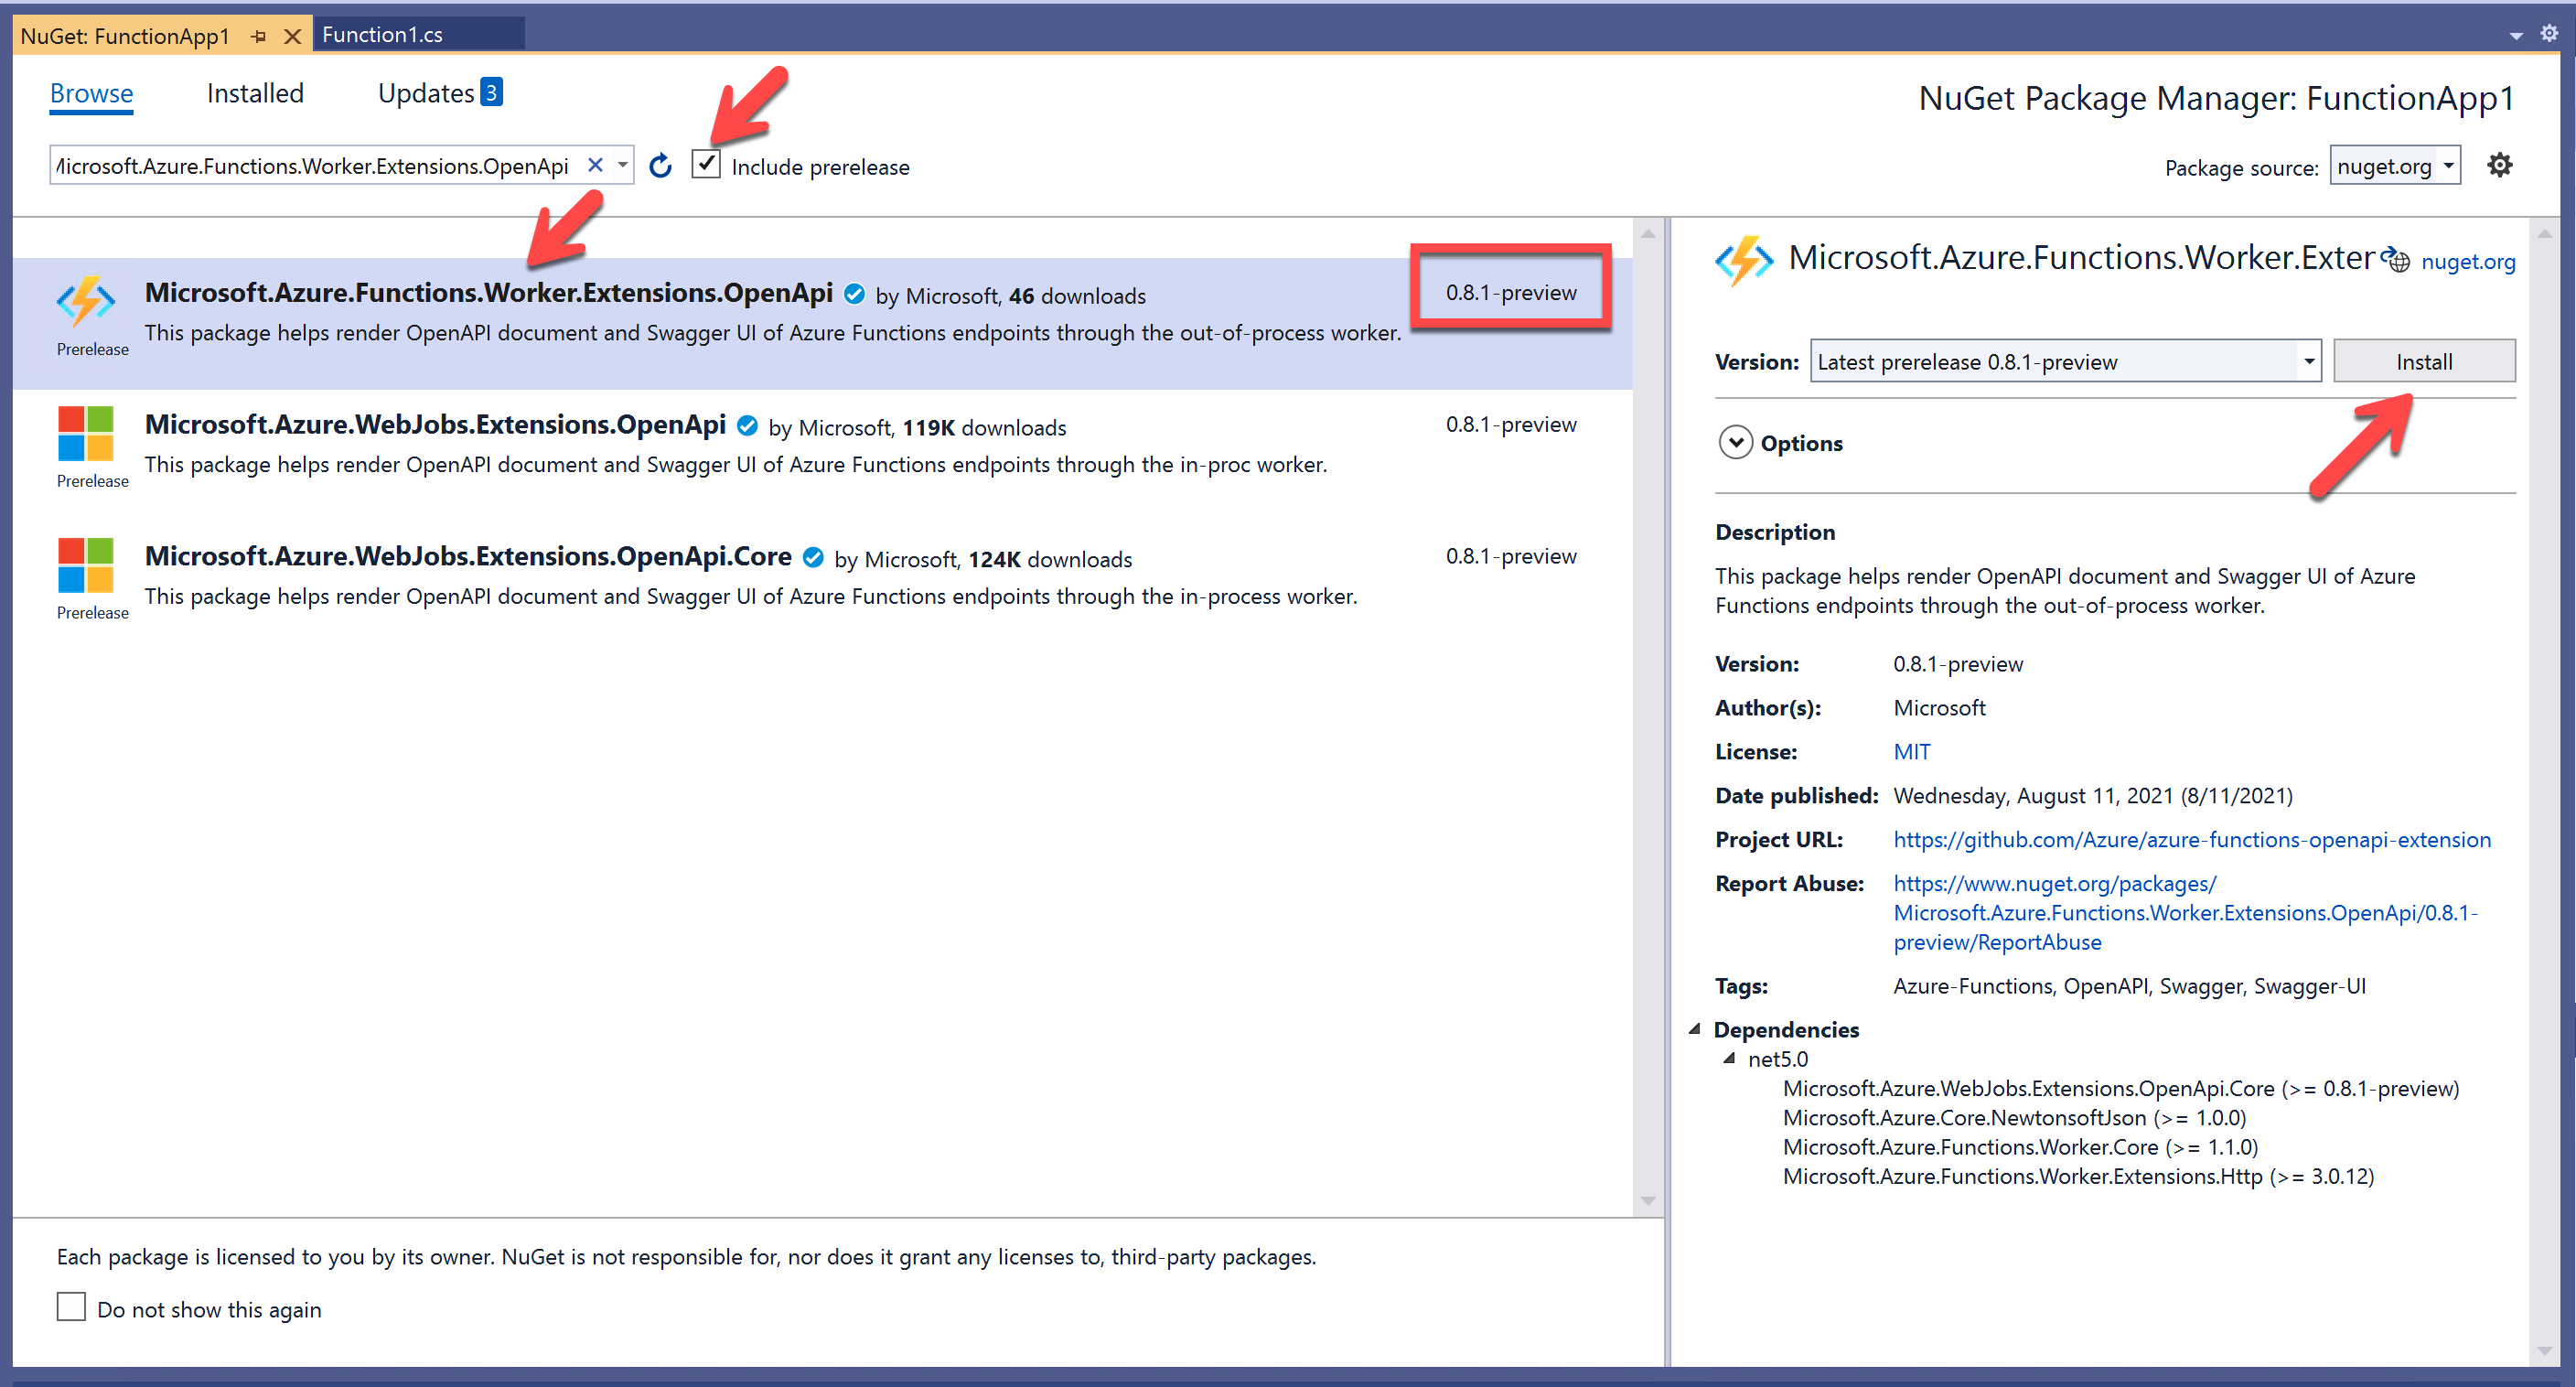 Search up the OpenAPI extension in the NuGet Package Manager screen